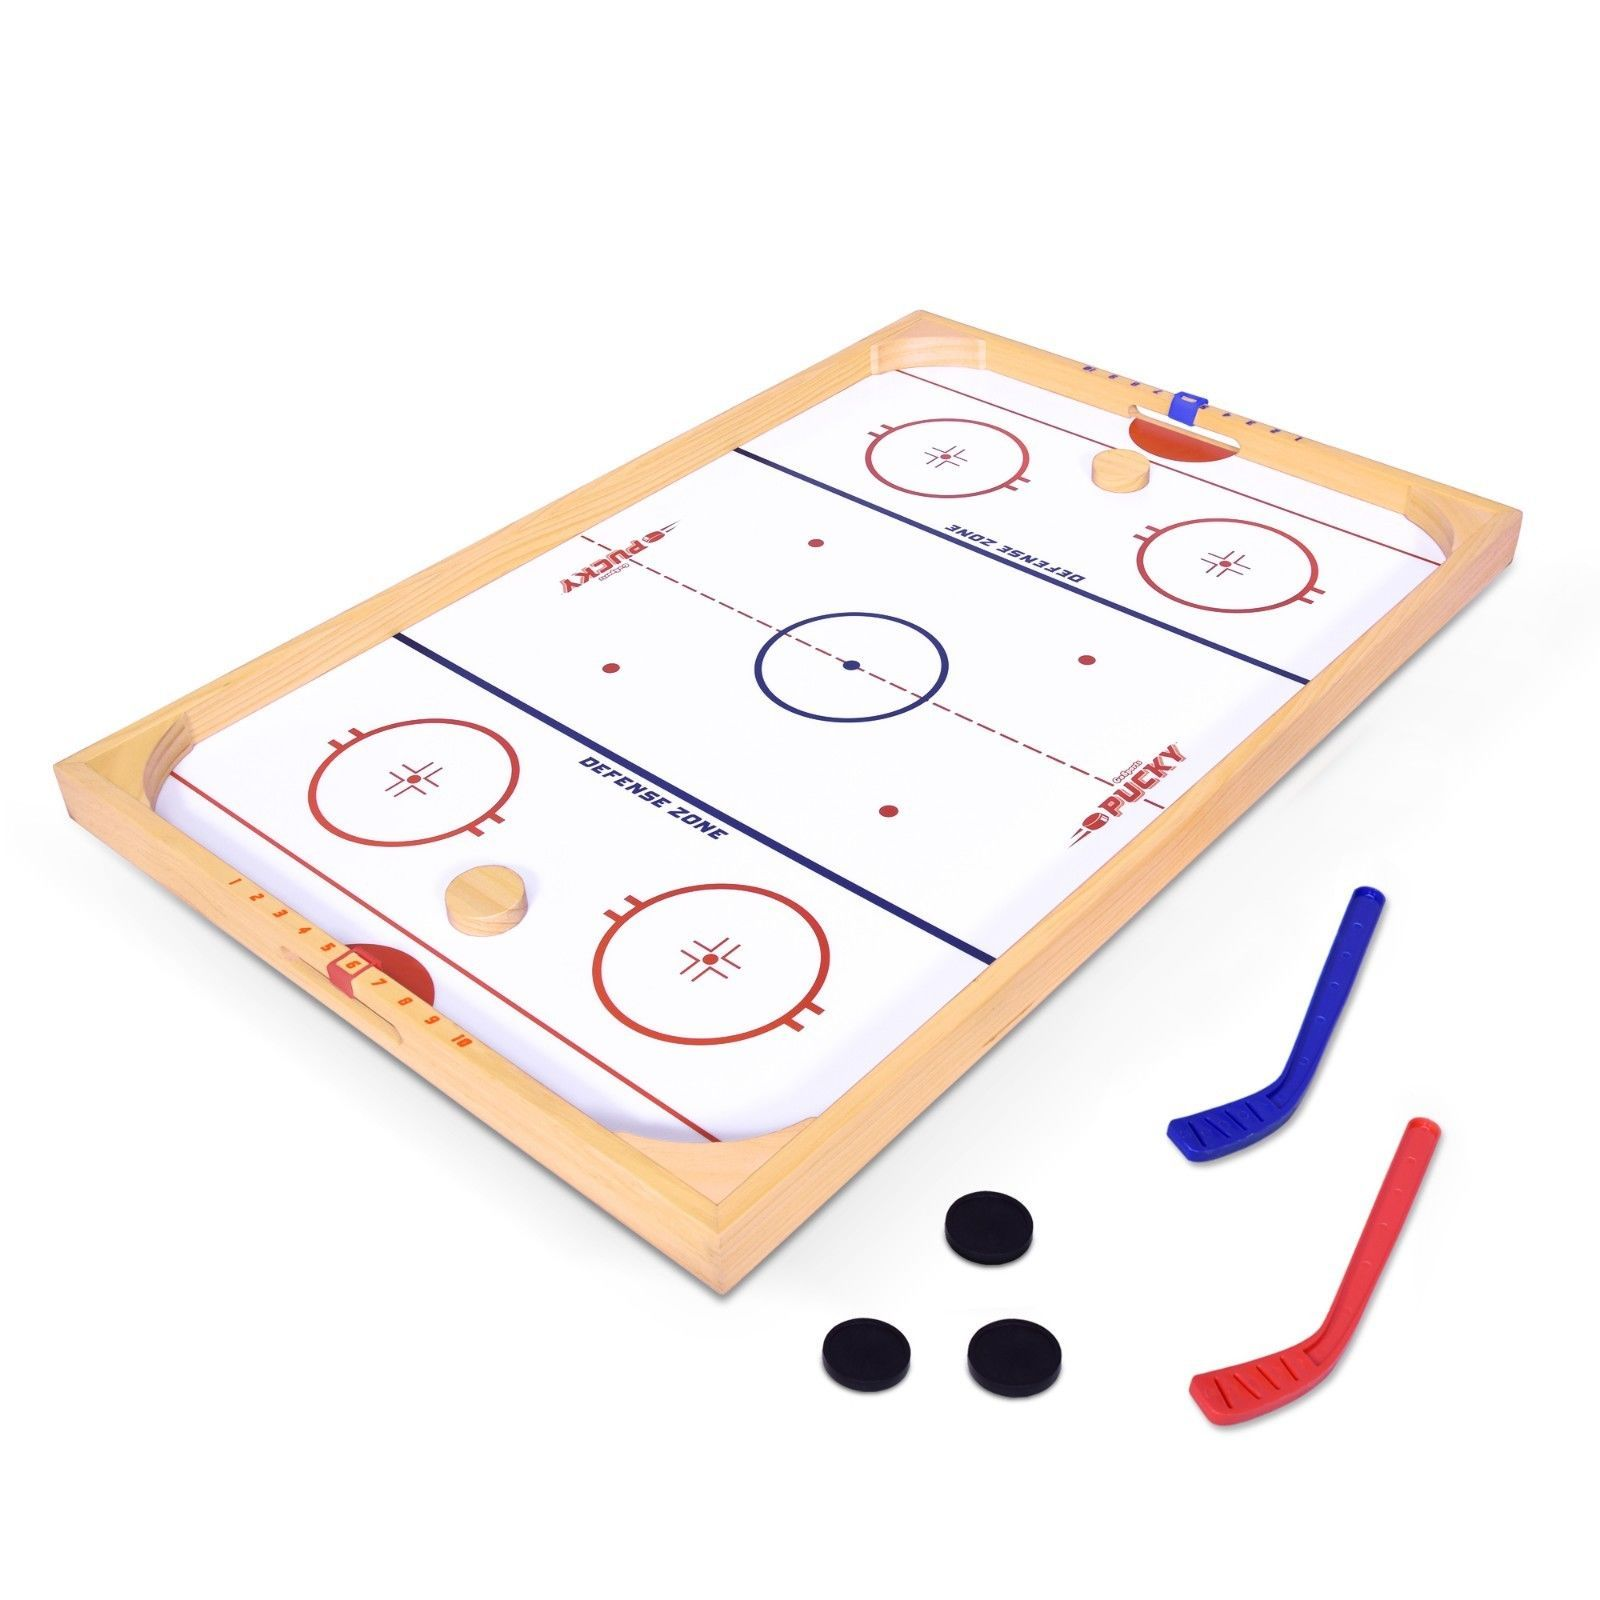 Gosports Ice Pucky Wooden Table Top Hockey Rink Game For Kids Adults In 2020 Wooden Table Top Top Games For Kids Air Hockey Table